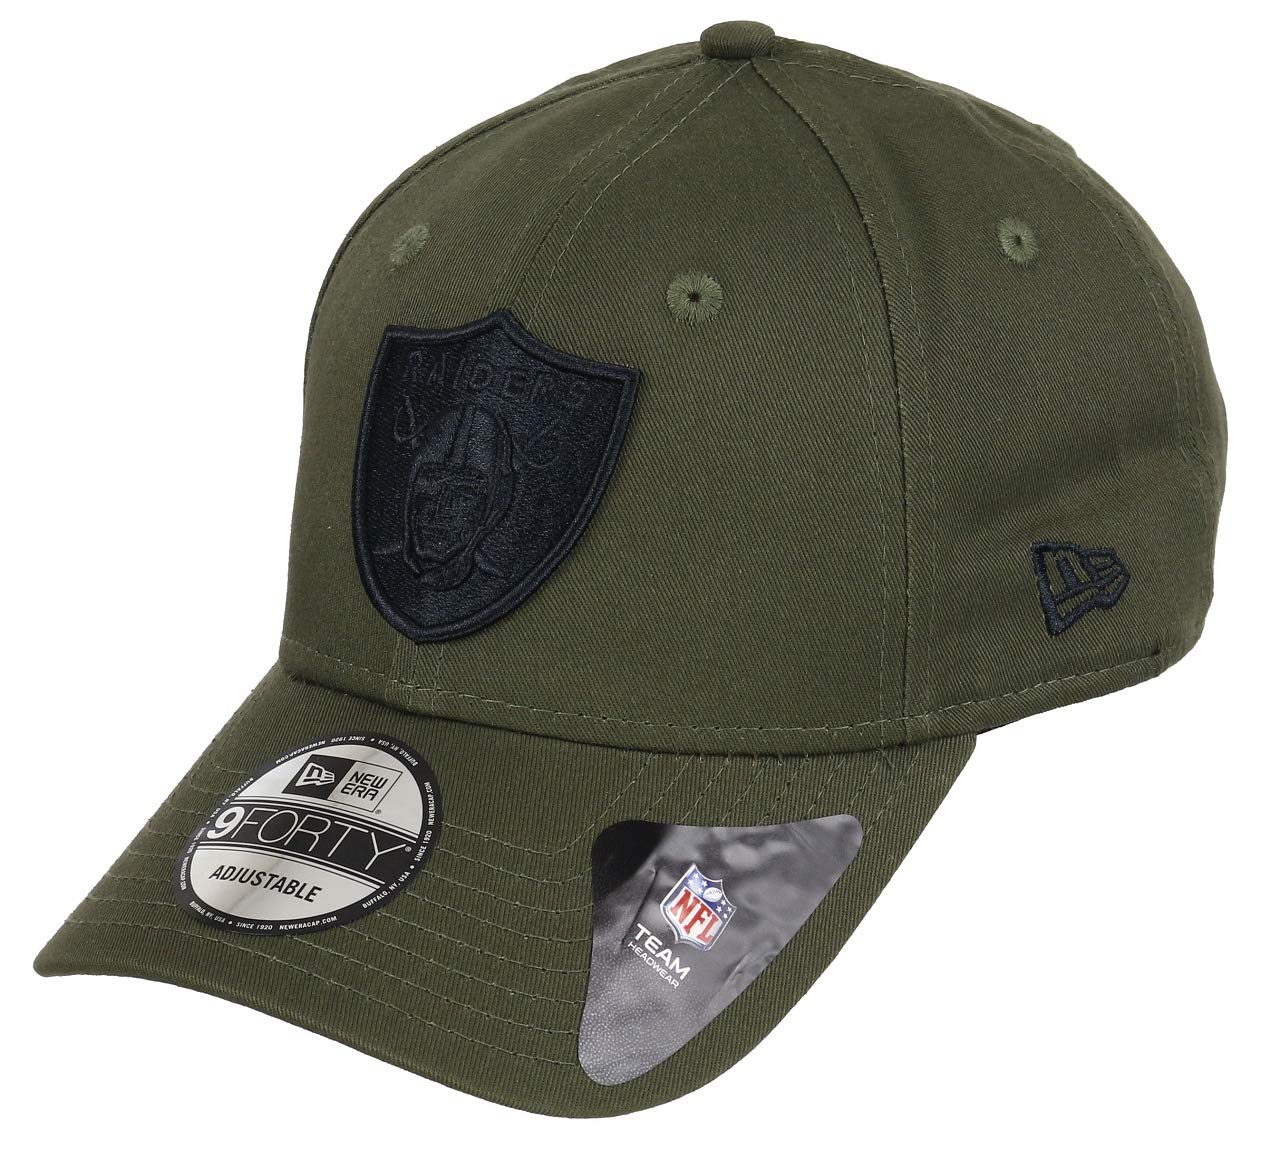 New Era Oakland Raiders 9forty Adjustable Cap NFL Olive Pack Olive ...